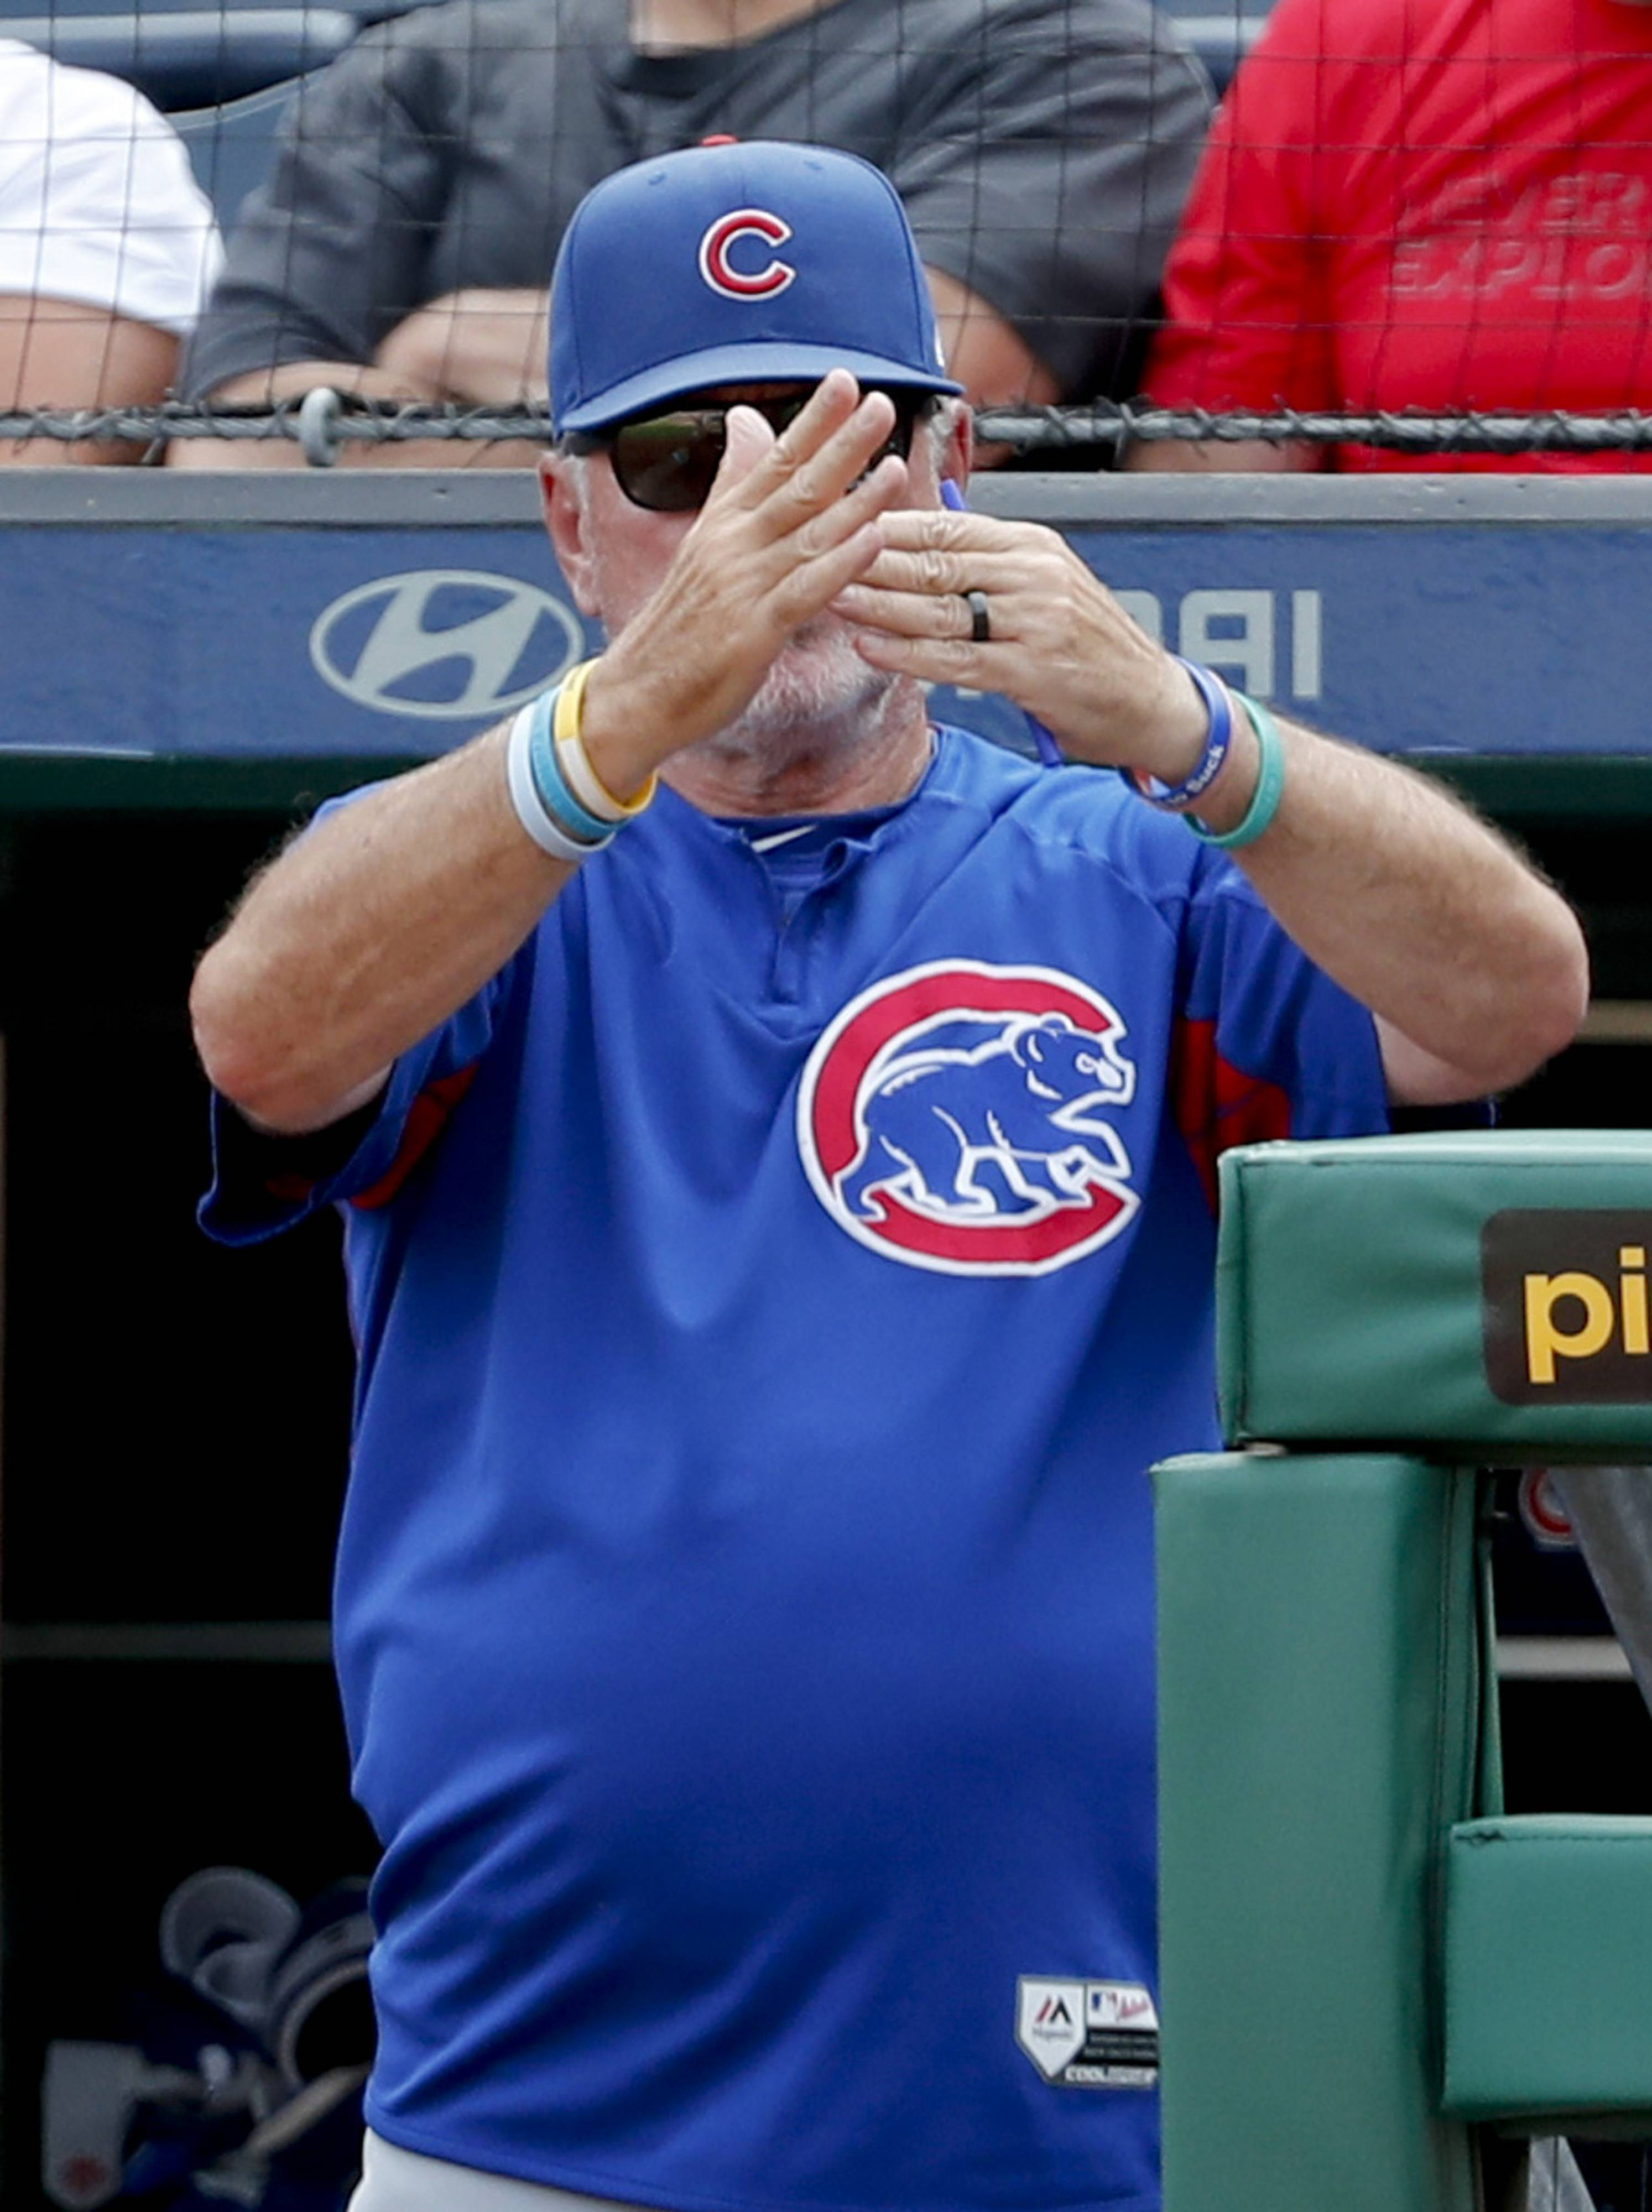 Chicago Cubs manager Joe Maddon call for a timeout with the bases loaded to pull the outfield in and have an outfielder change gloves as the Pittsburgh Pirates bat in the ninth inning of a baseball game Sunday, Aug. 19, 2018, in Pittsburgh. (AP Photo/Keith Srakocic)